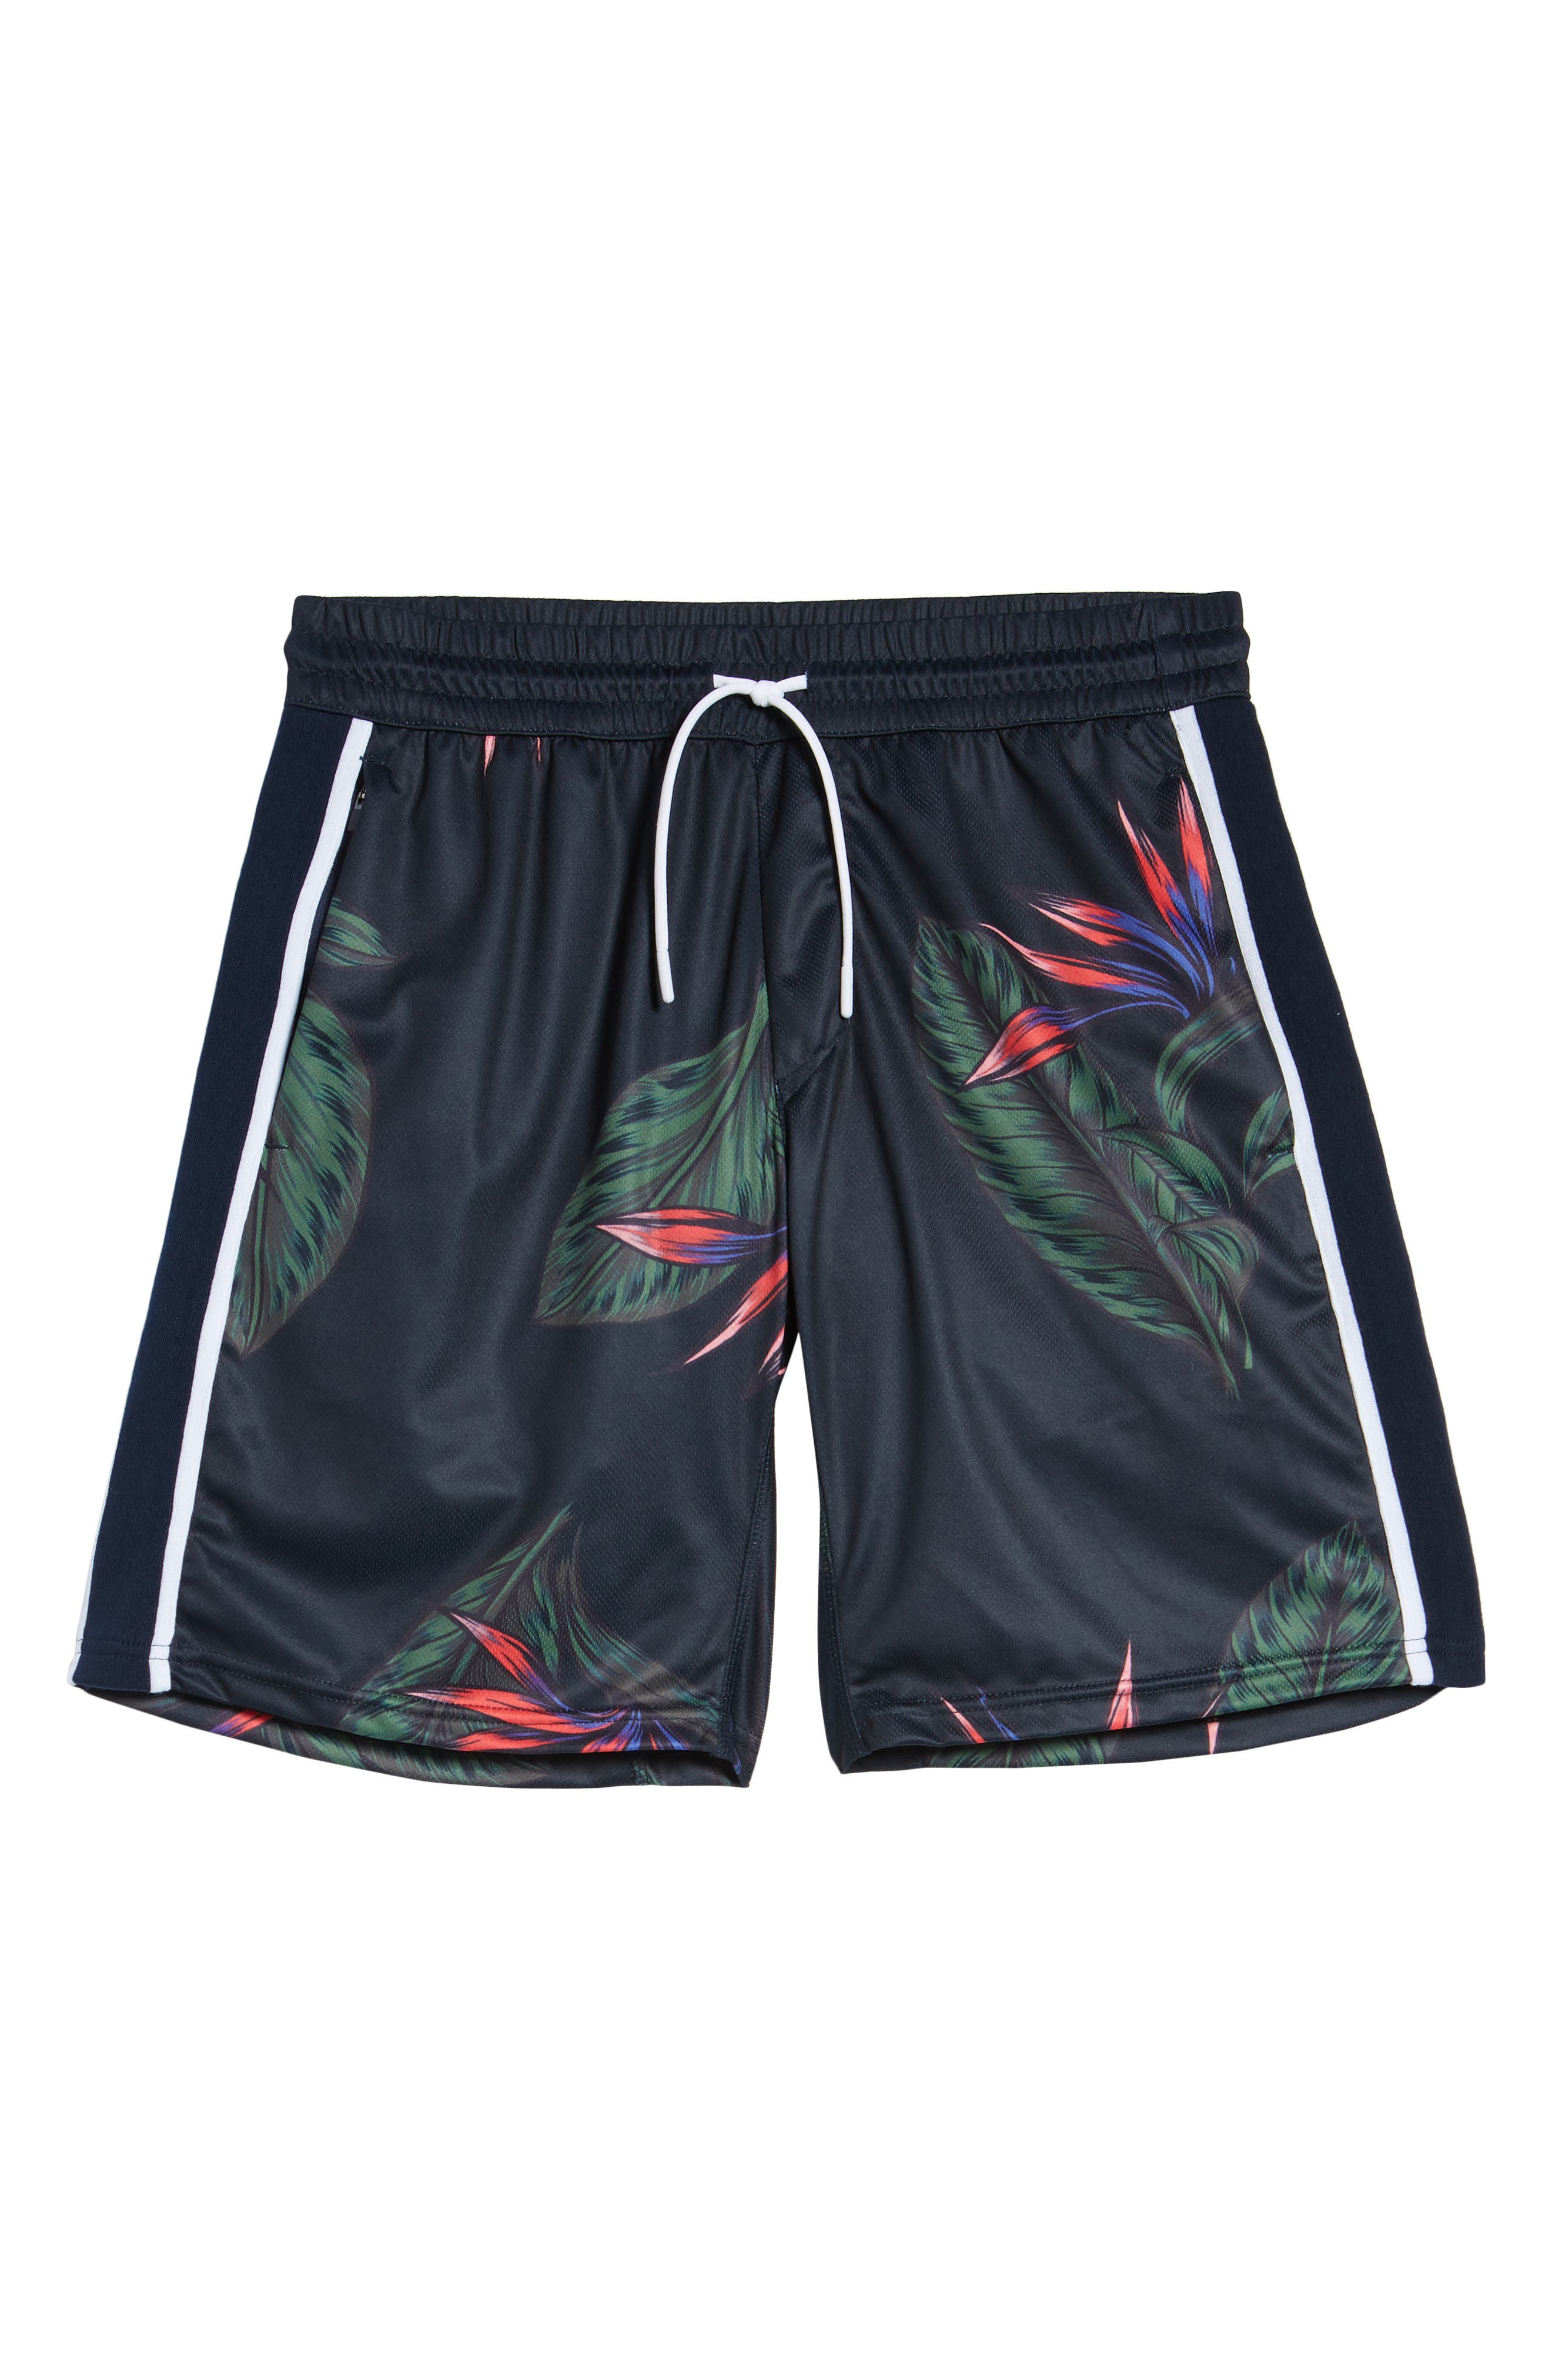 Lotus Sideline Shorts,                             Alternate thumbnail 6, color,                             NAVY